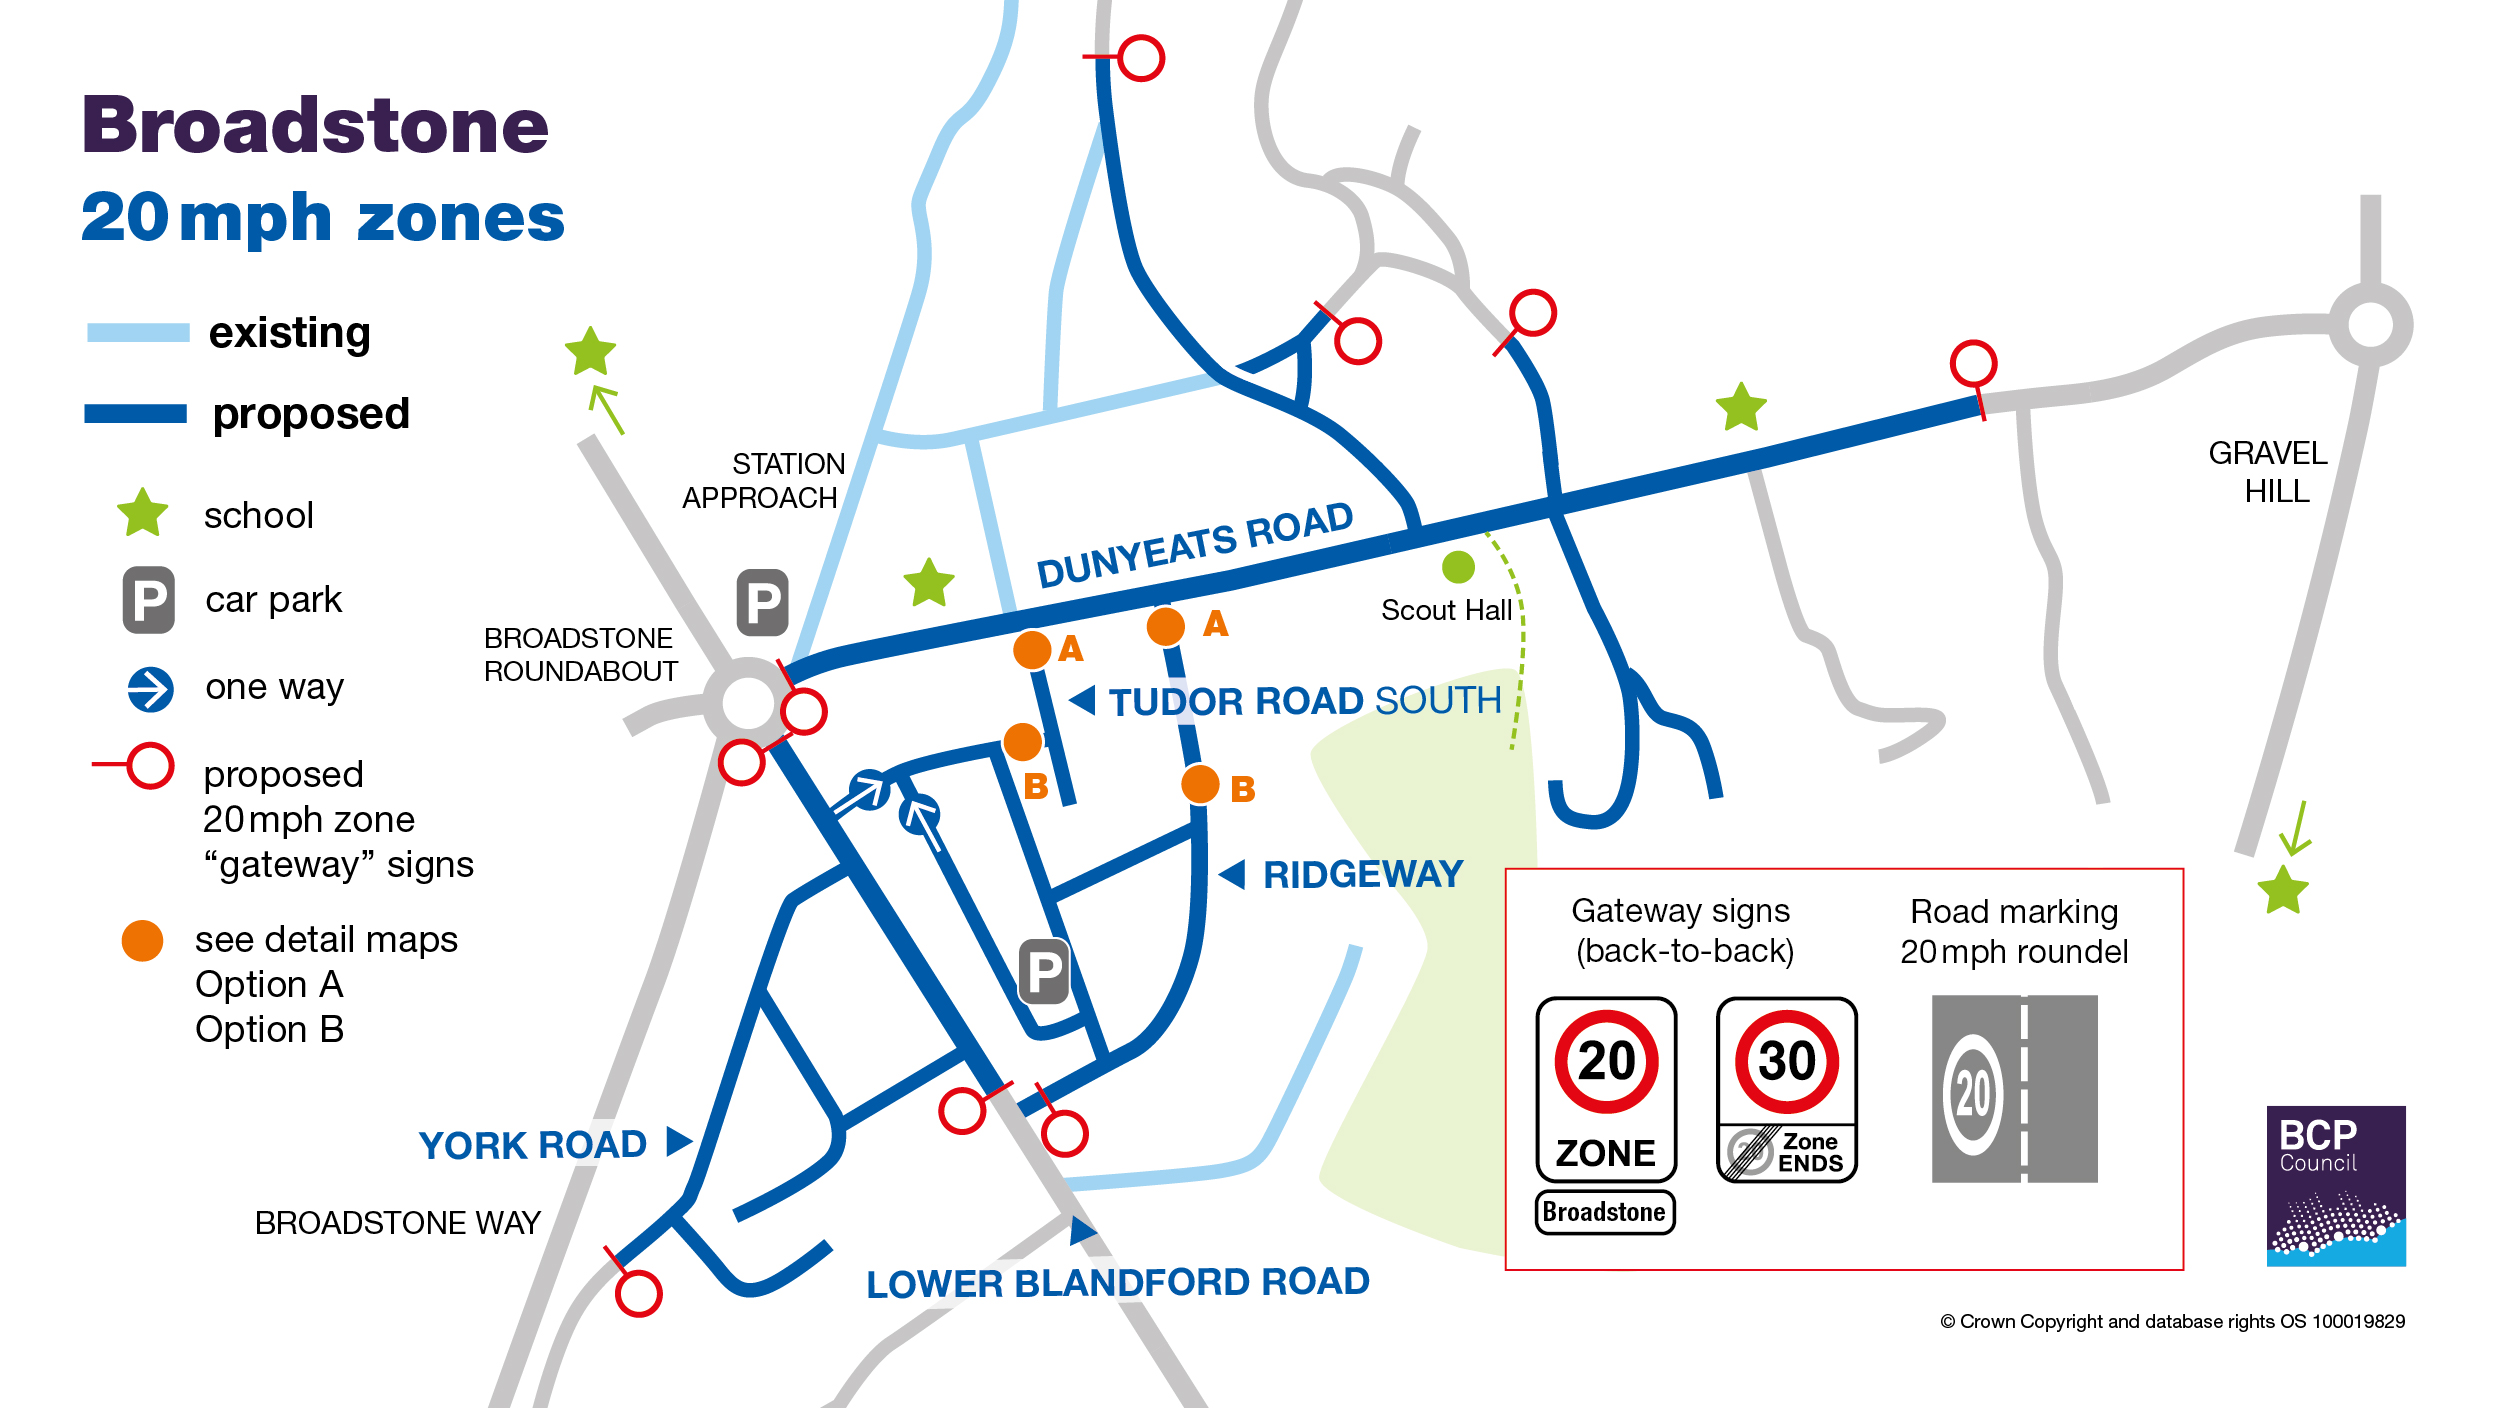 map of Broadstone proposals